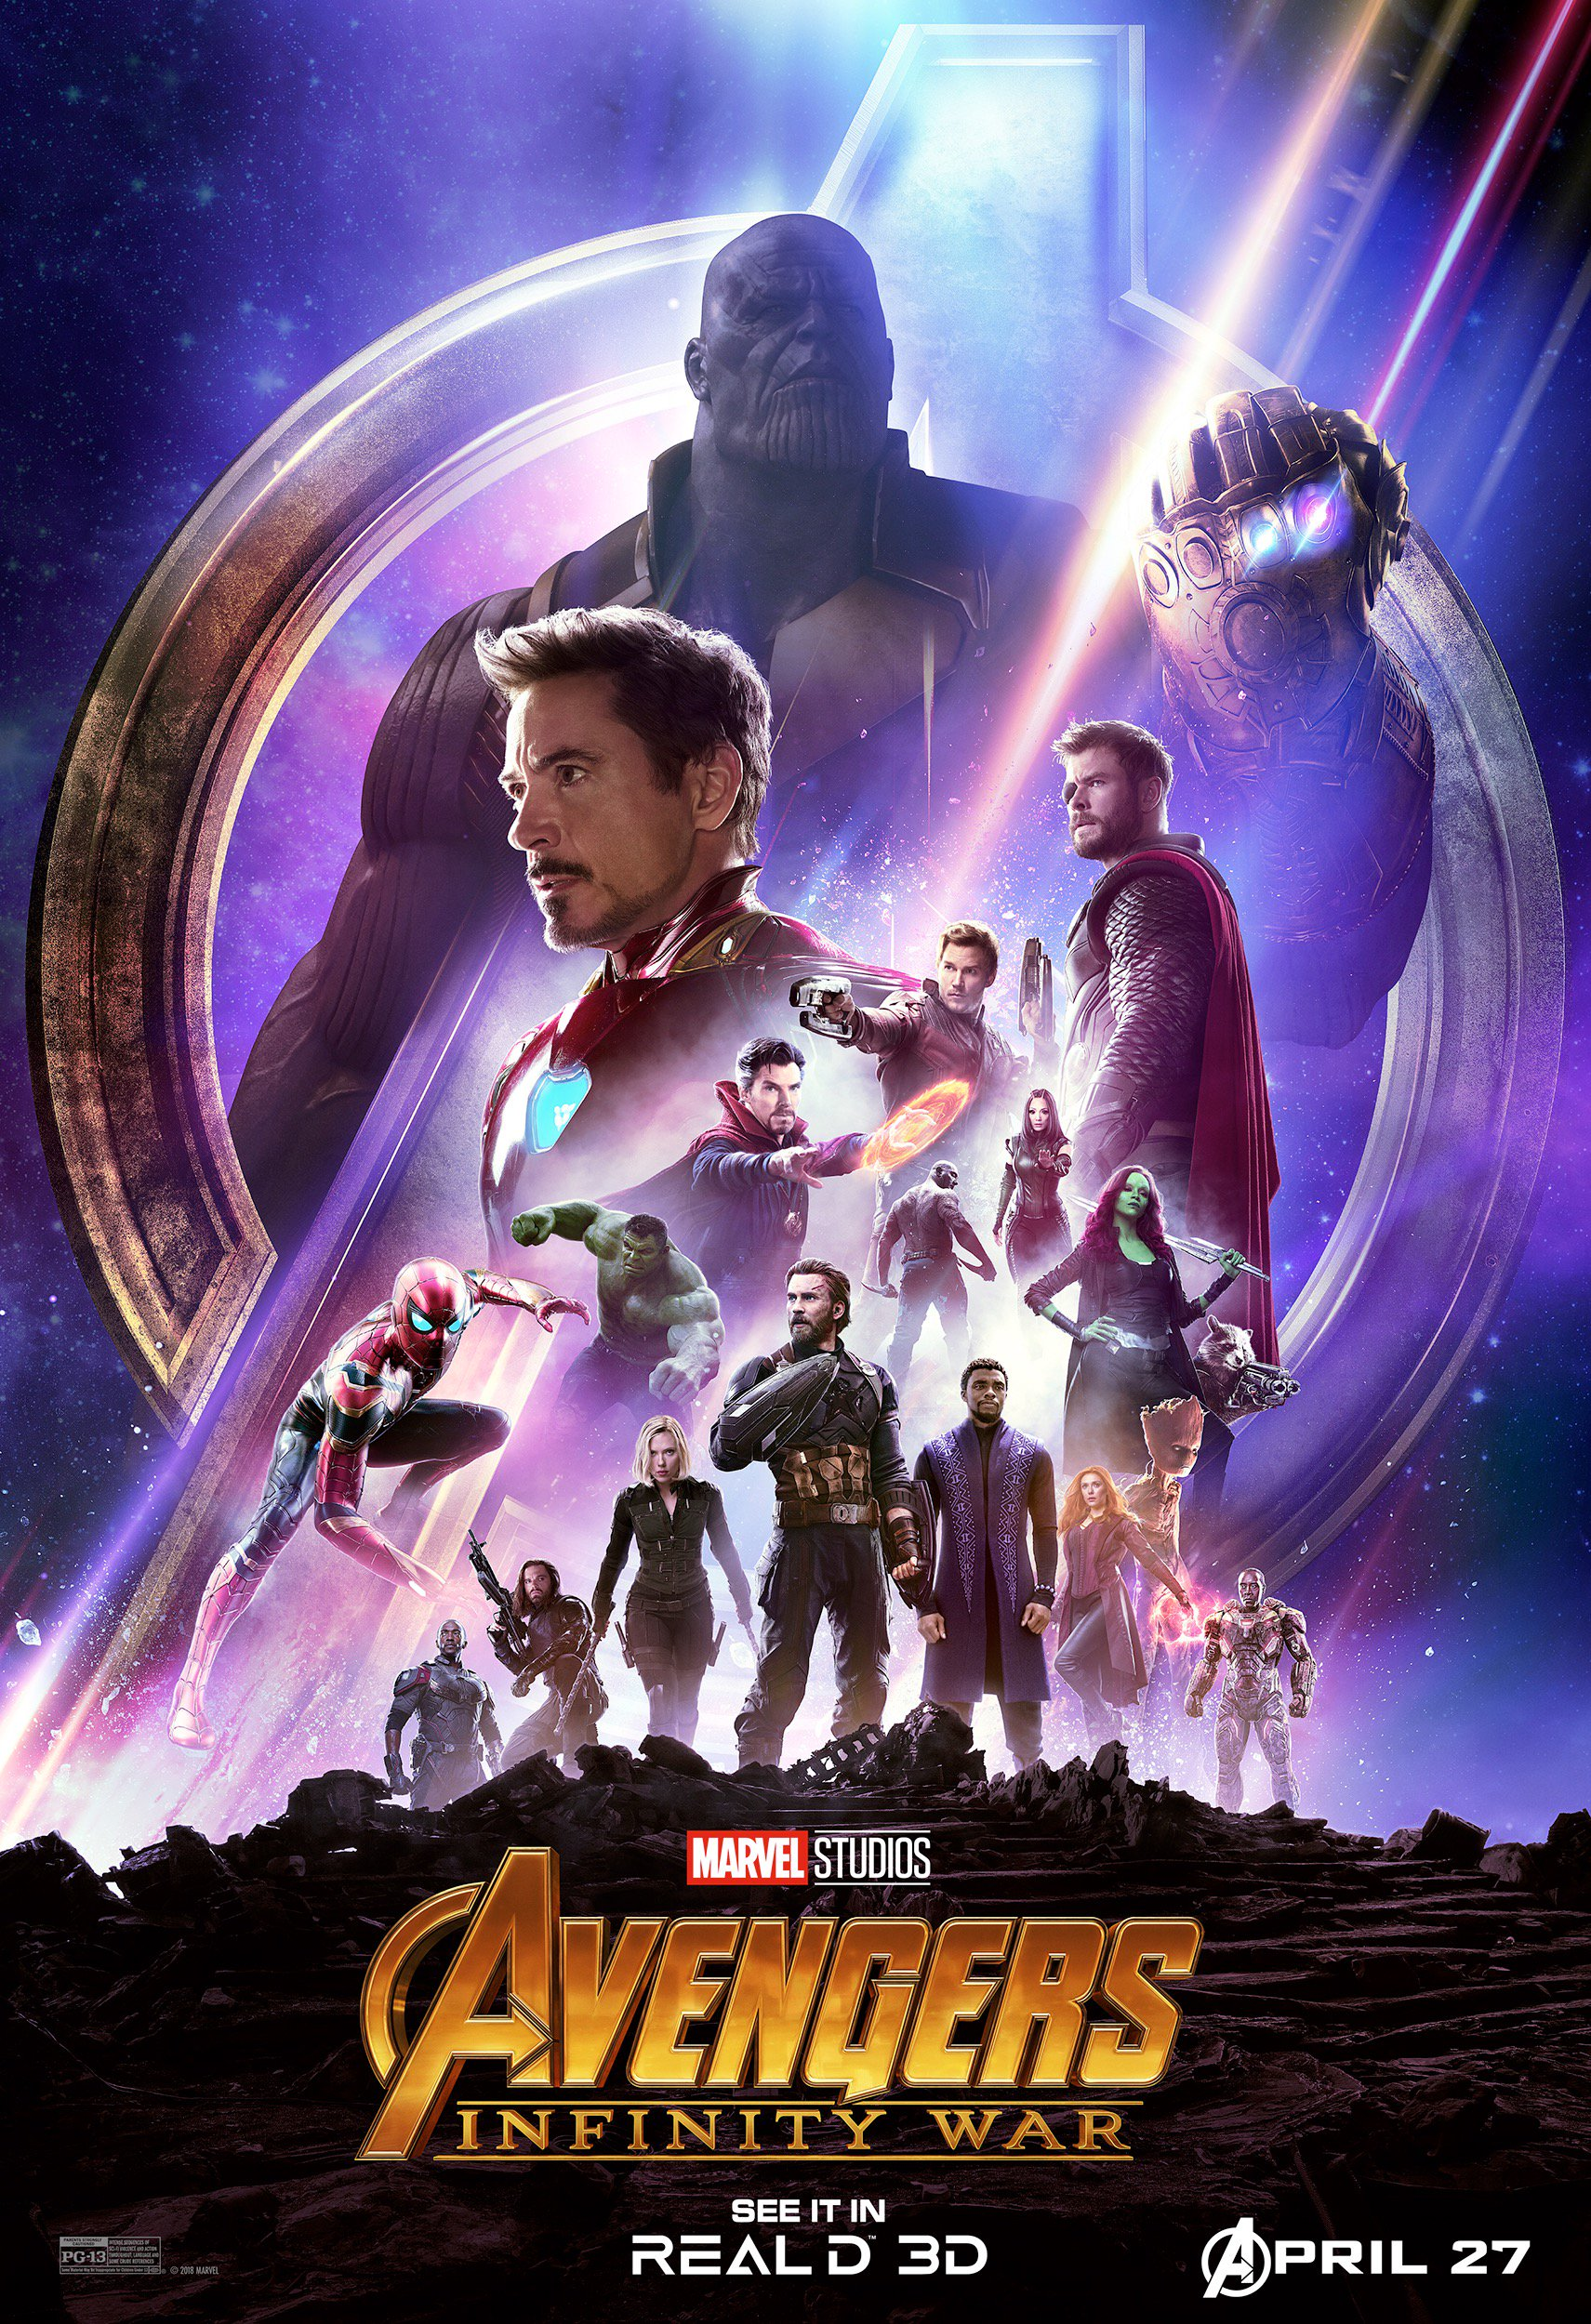 image - infinity war dolby poster 2 | marvel cinematic universe